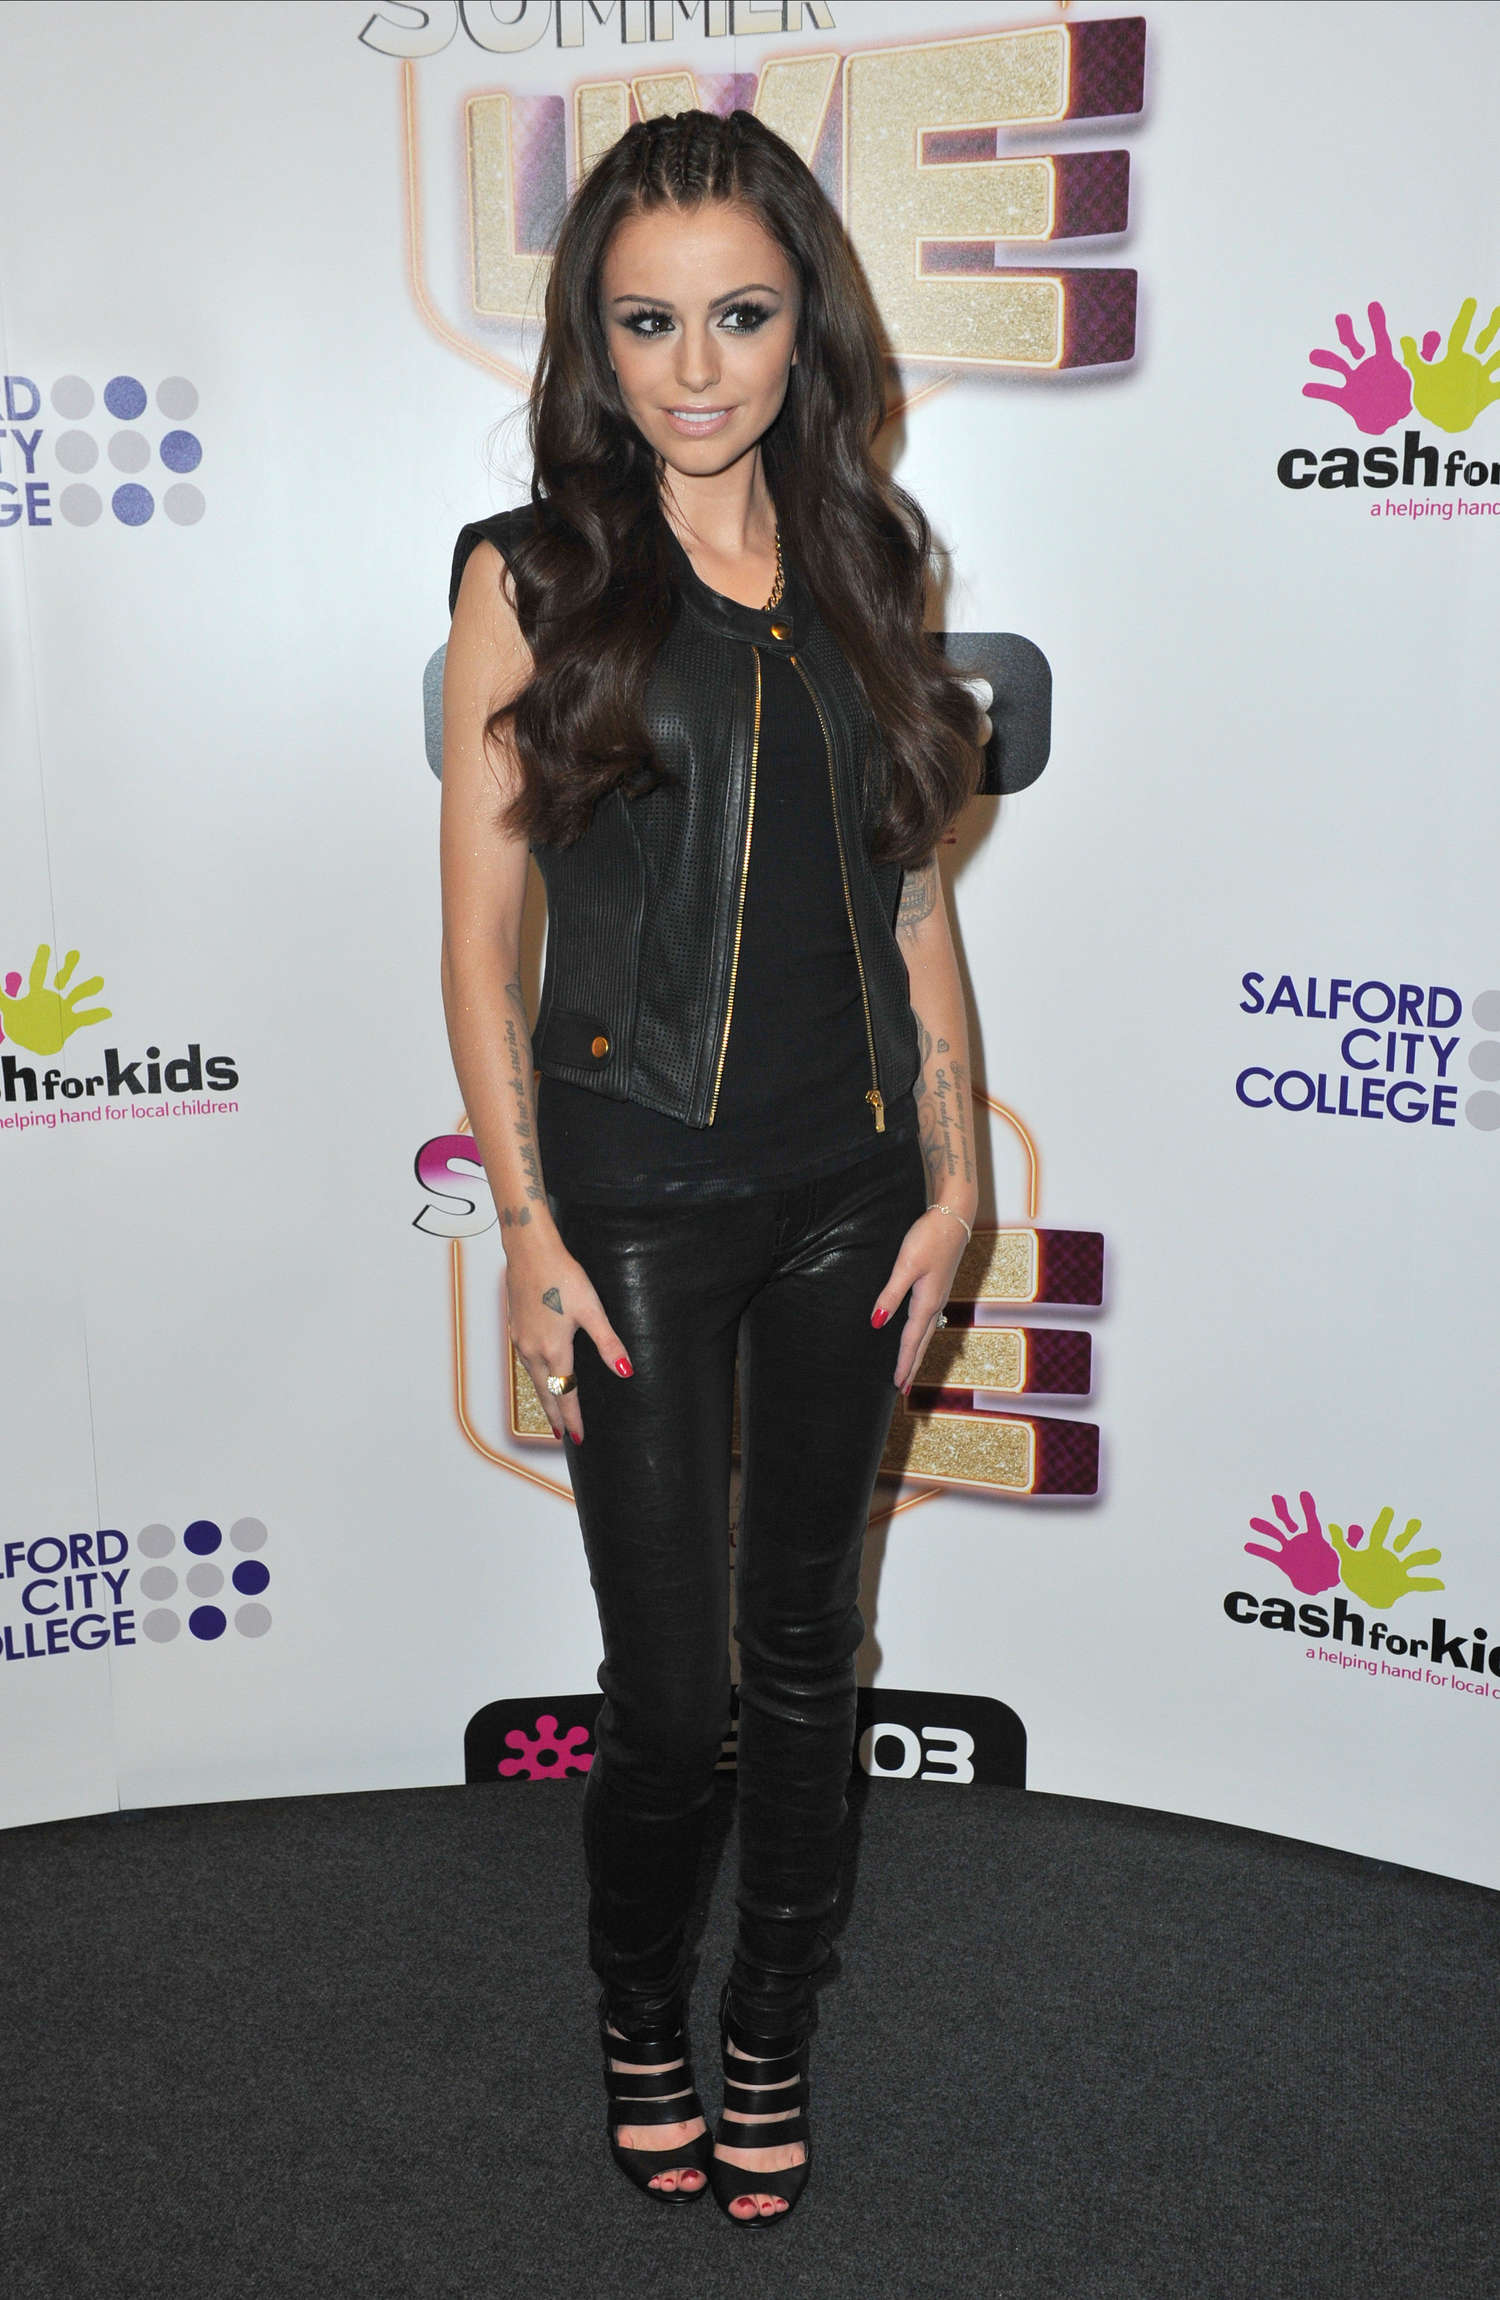 Cher Lloyd Prerforms Live at Key Summer Concert in Manchester